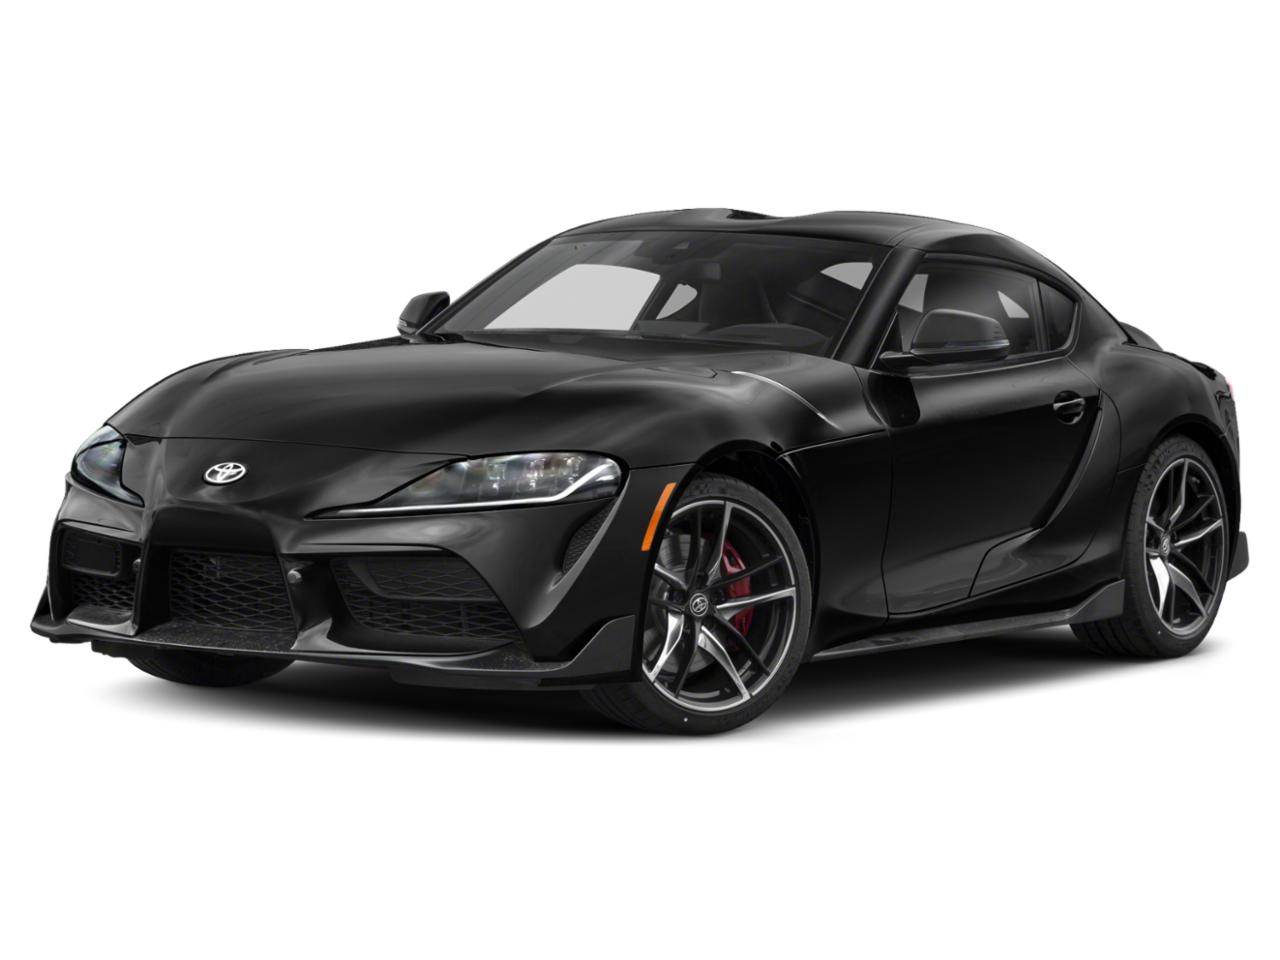 2021 Toyota GR Supra Vehicle Photo in GREELEY, CO 80634-4125